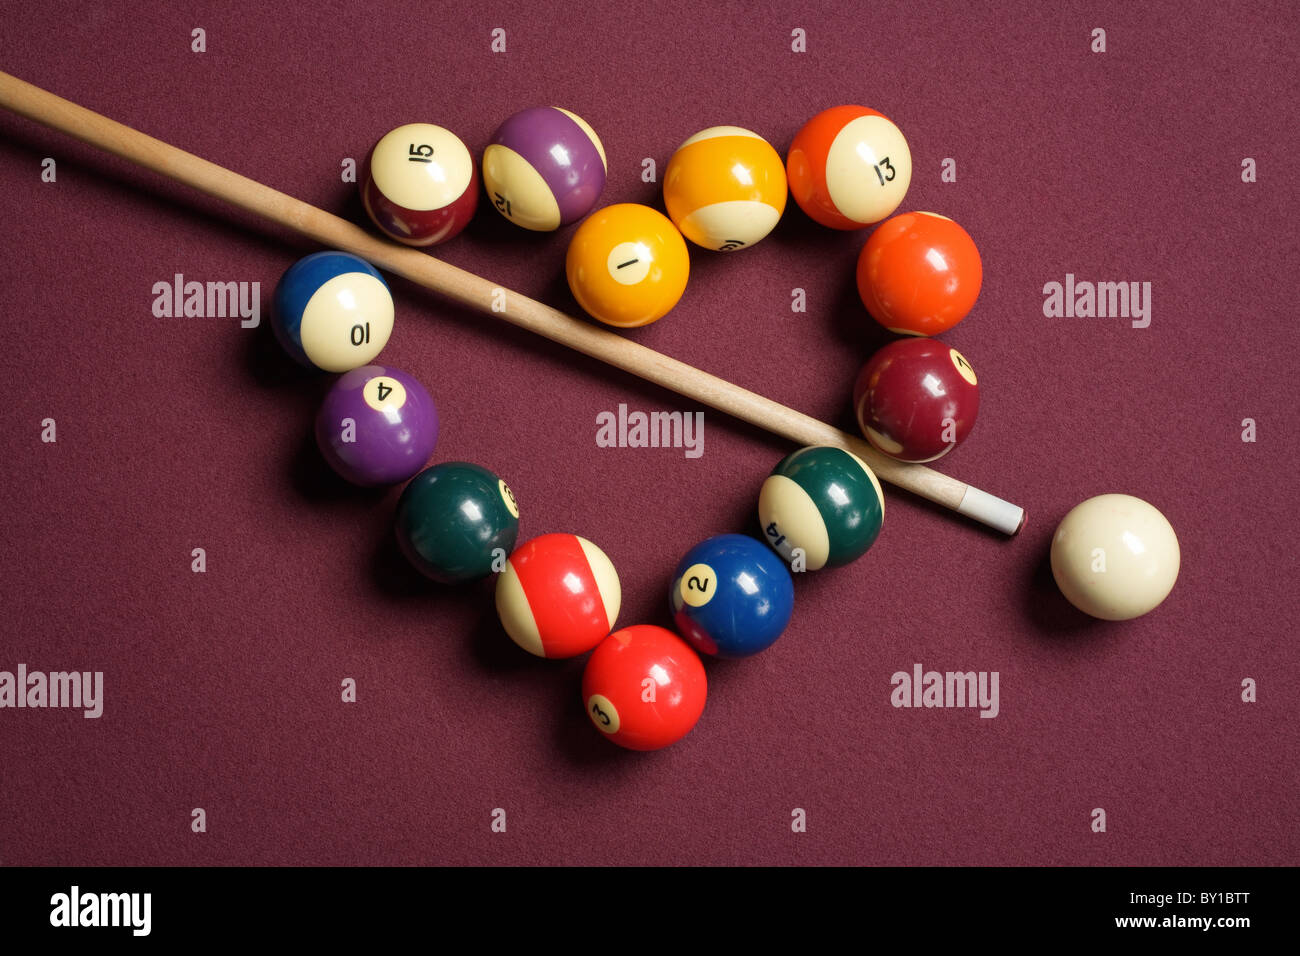 heart-shaped billiard balls with cue ball and stick - Stock Image